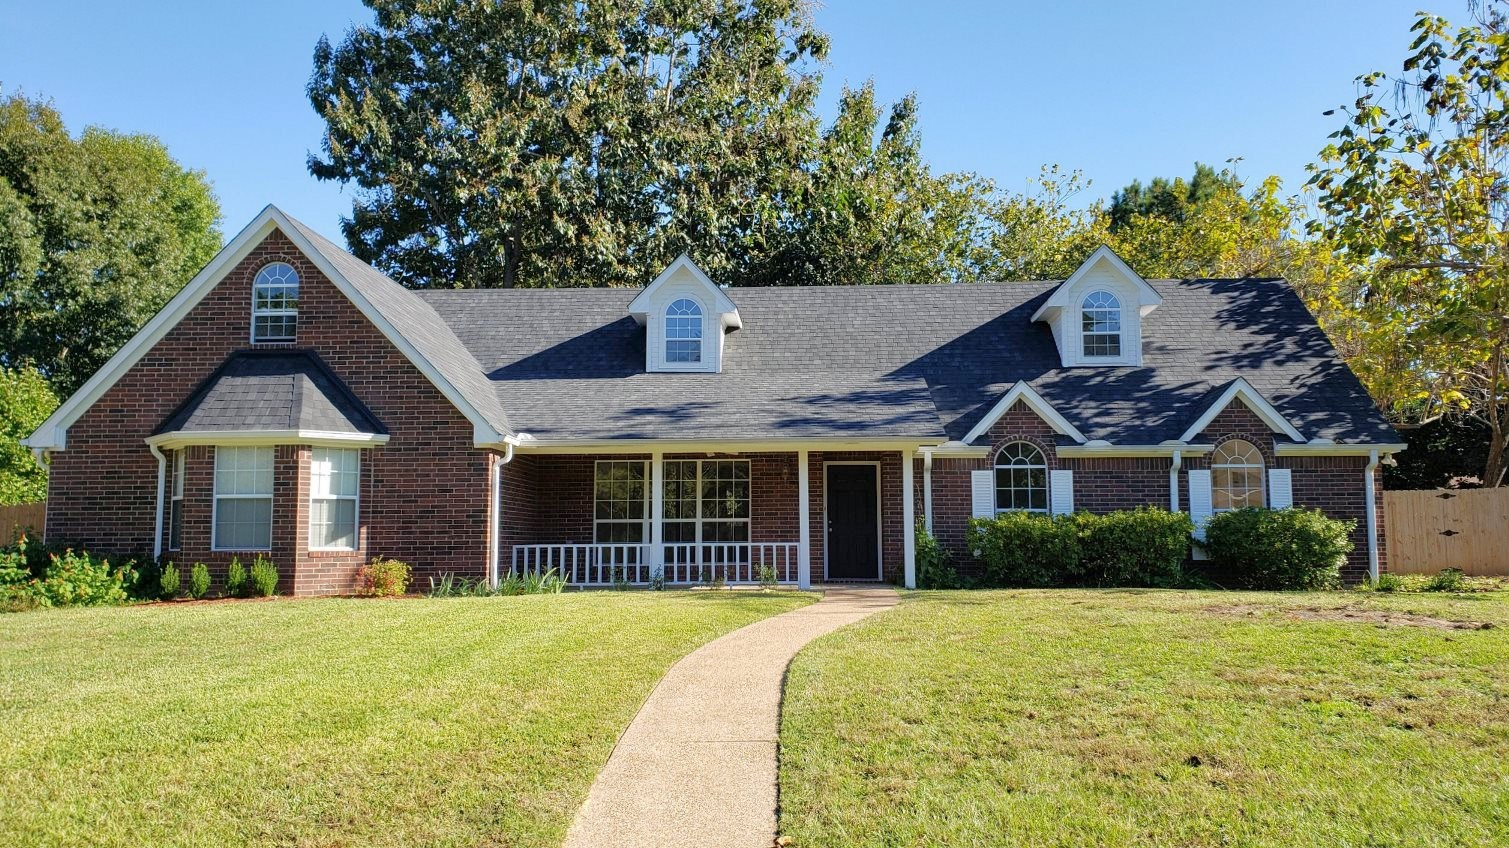 UPDATED HOME NEAR LAKE PALESTINE IN EAST TEXAS